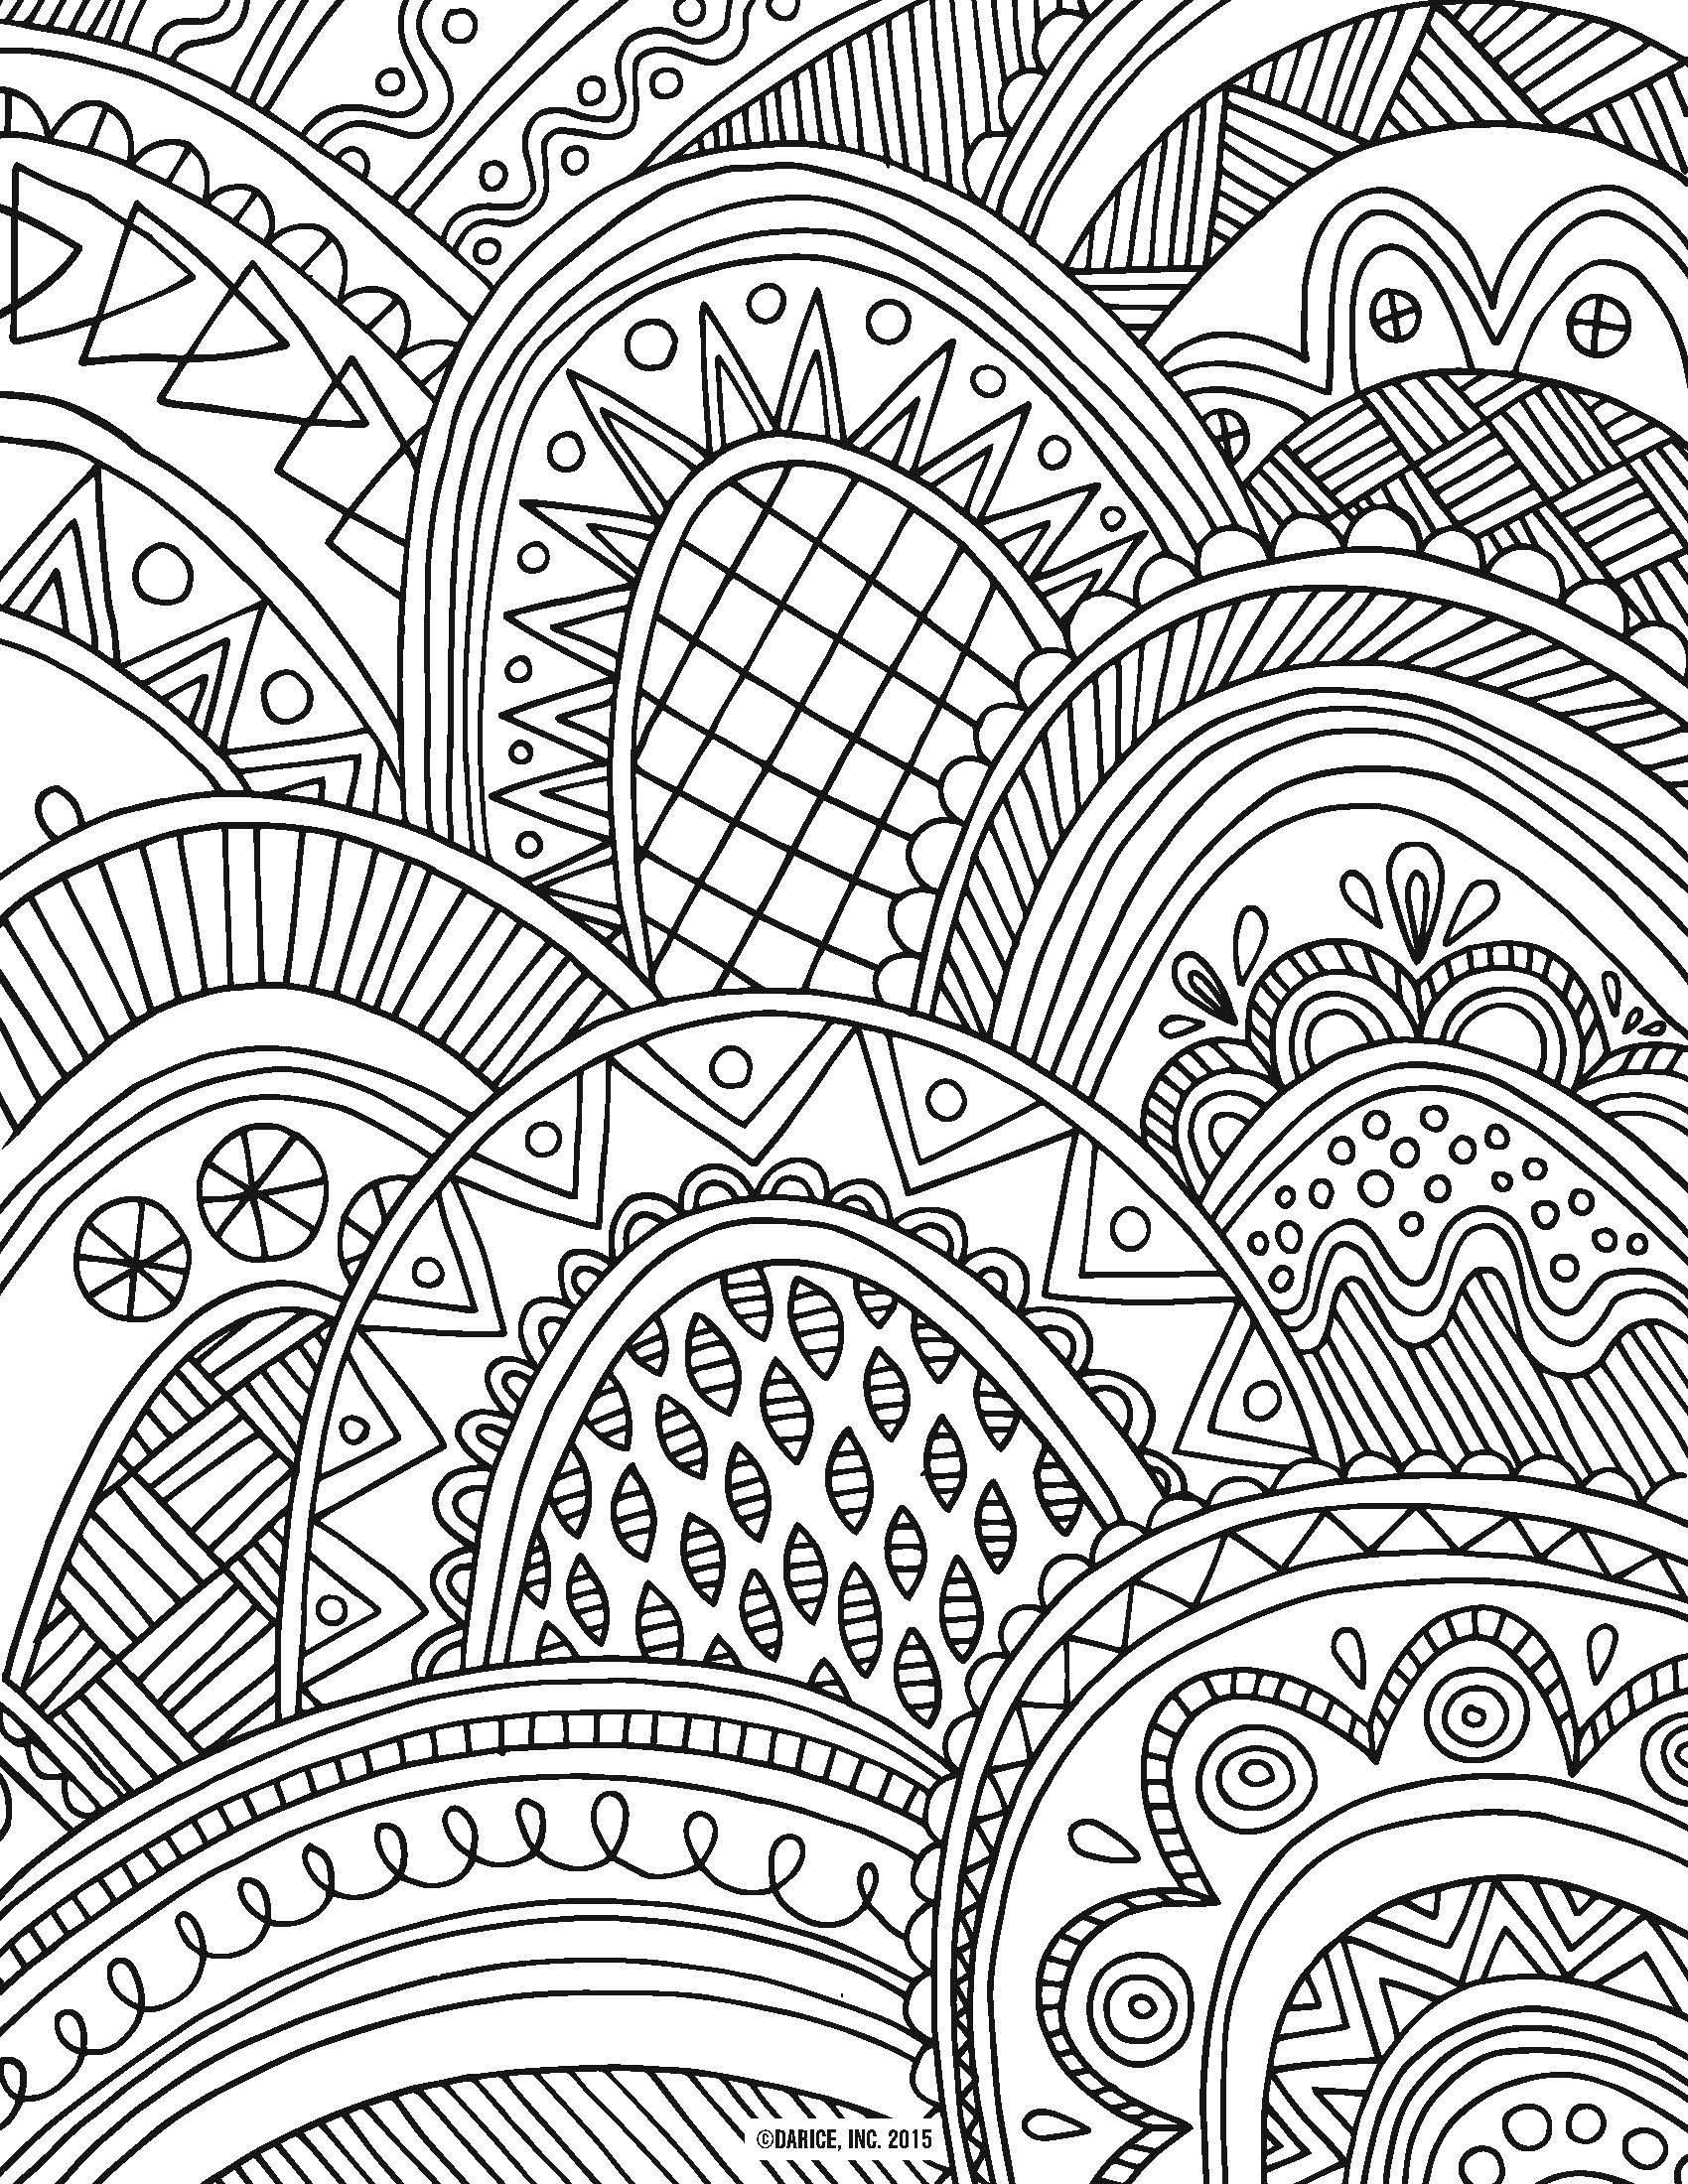 coloring book for adults easy simple mandala coloring pages for adults free printable adults book for easy coloring